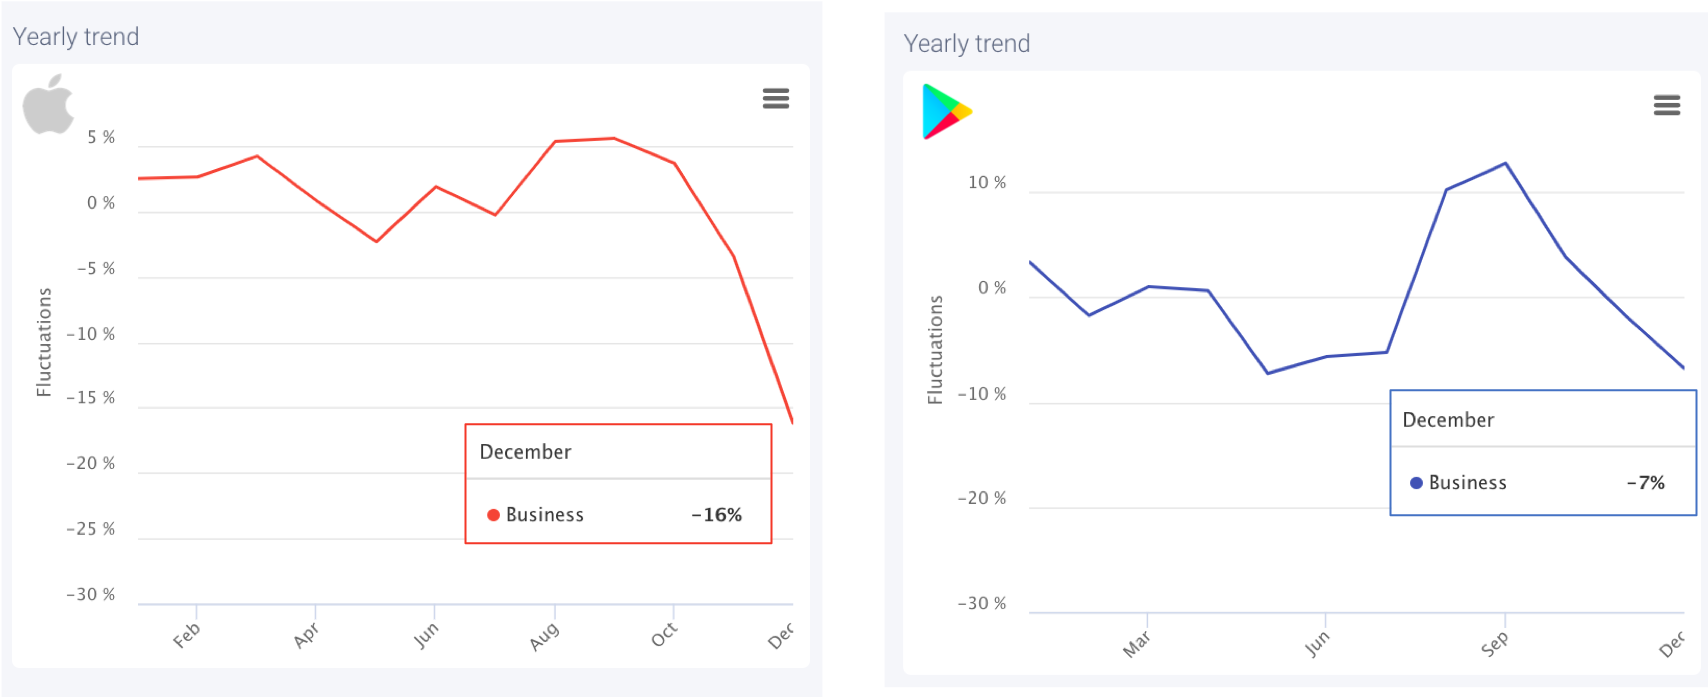 AppTweak Market Intelligence: Apps in the Business category can expect a drop in average daily downloads in December.